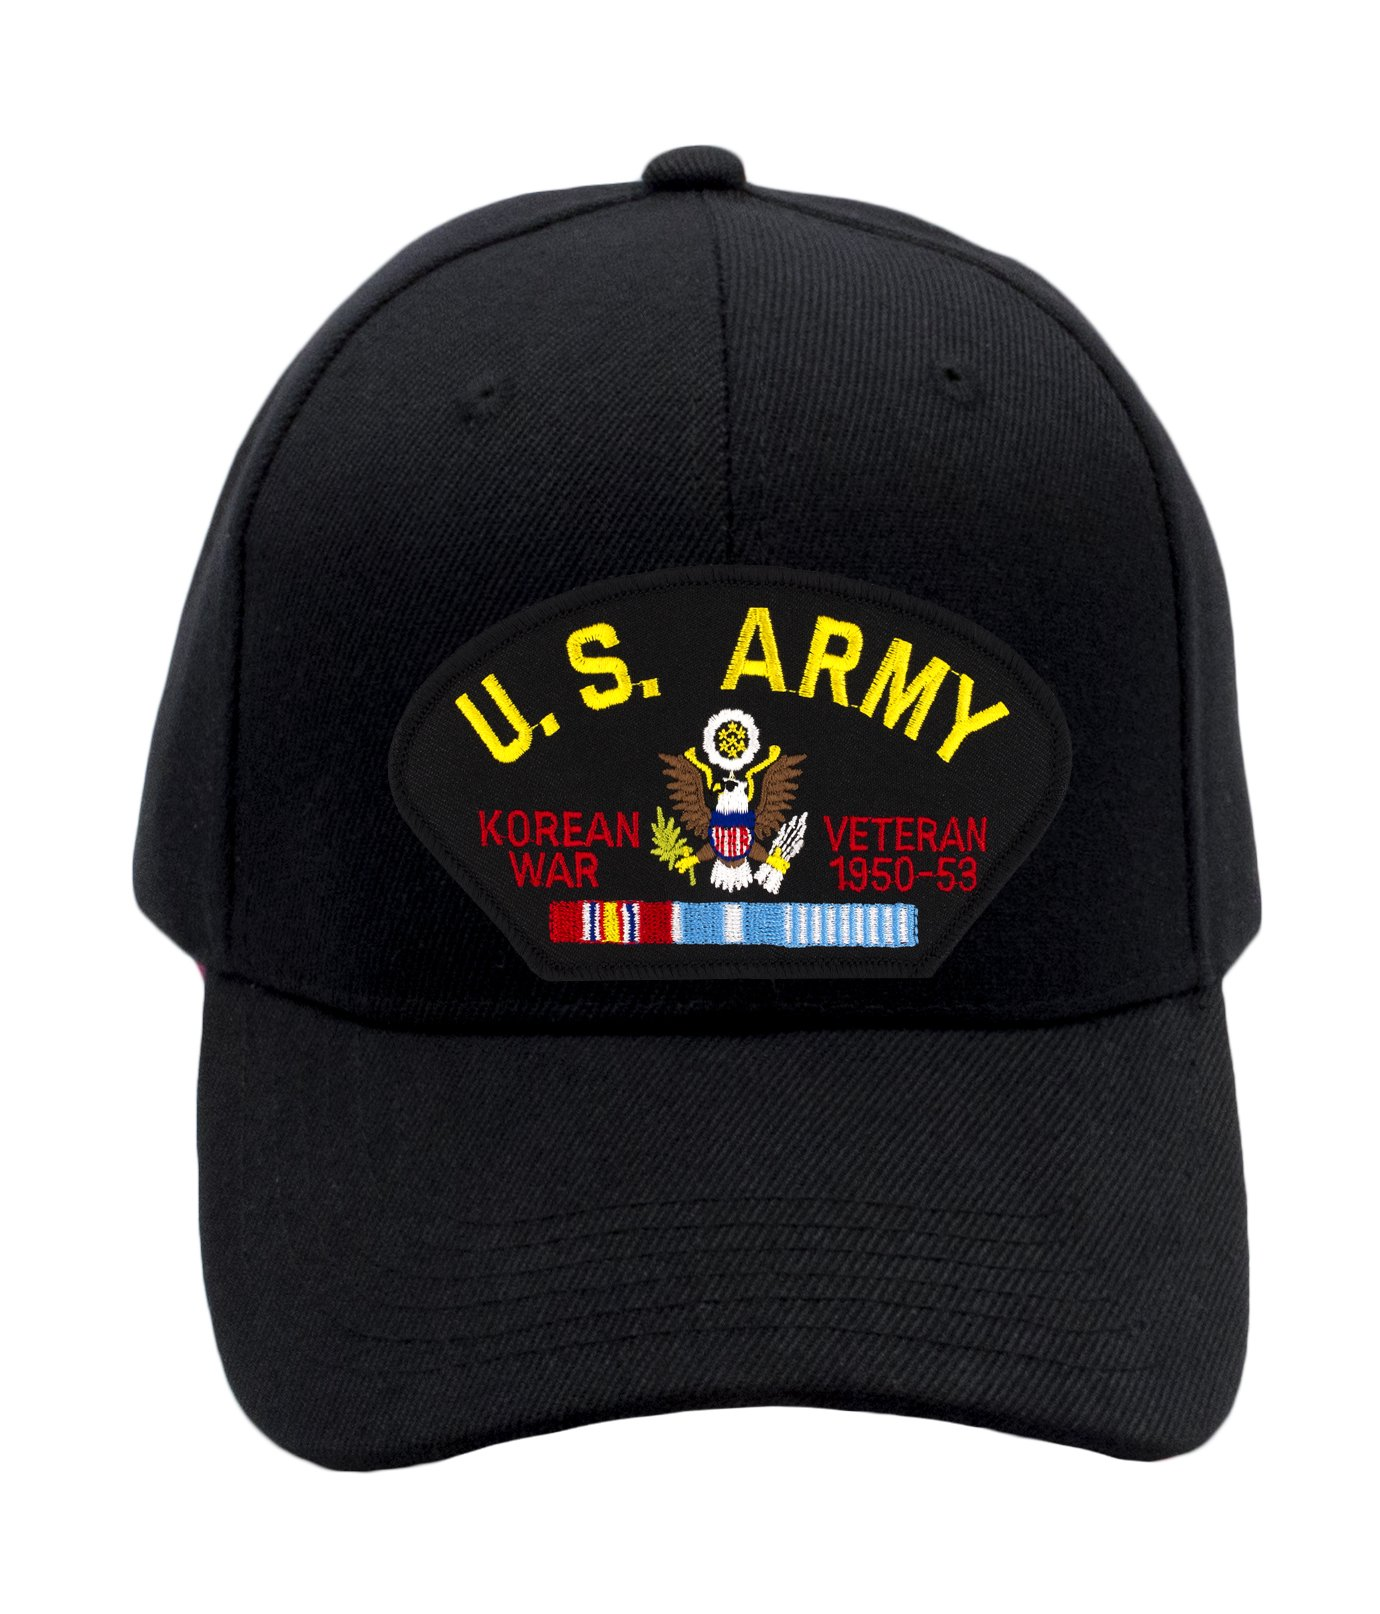 Patchtown US Army - Korean War Veteran Hat/Ballcap Adjustable One Size Fits Most (Multiple Colors & Styles) (Black, Standard (No Flag))